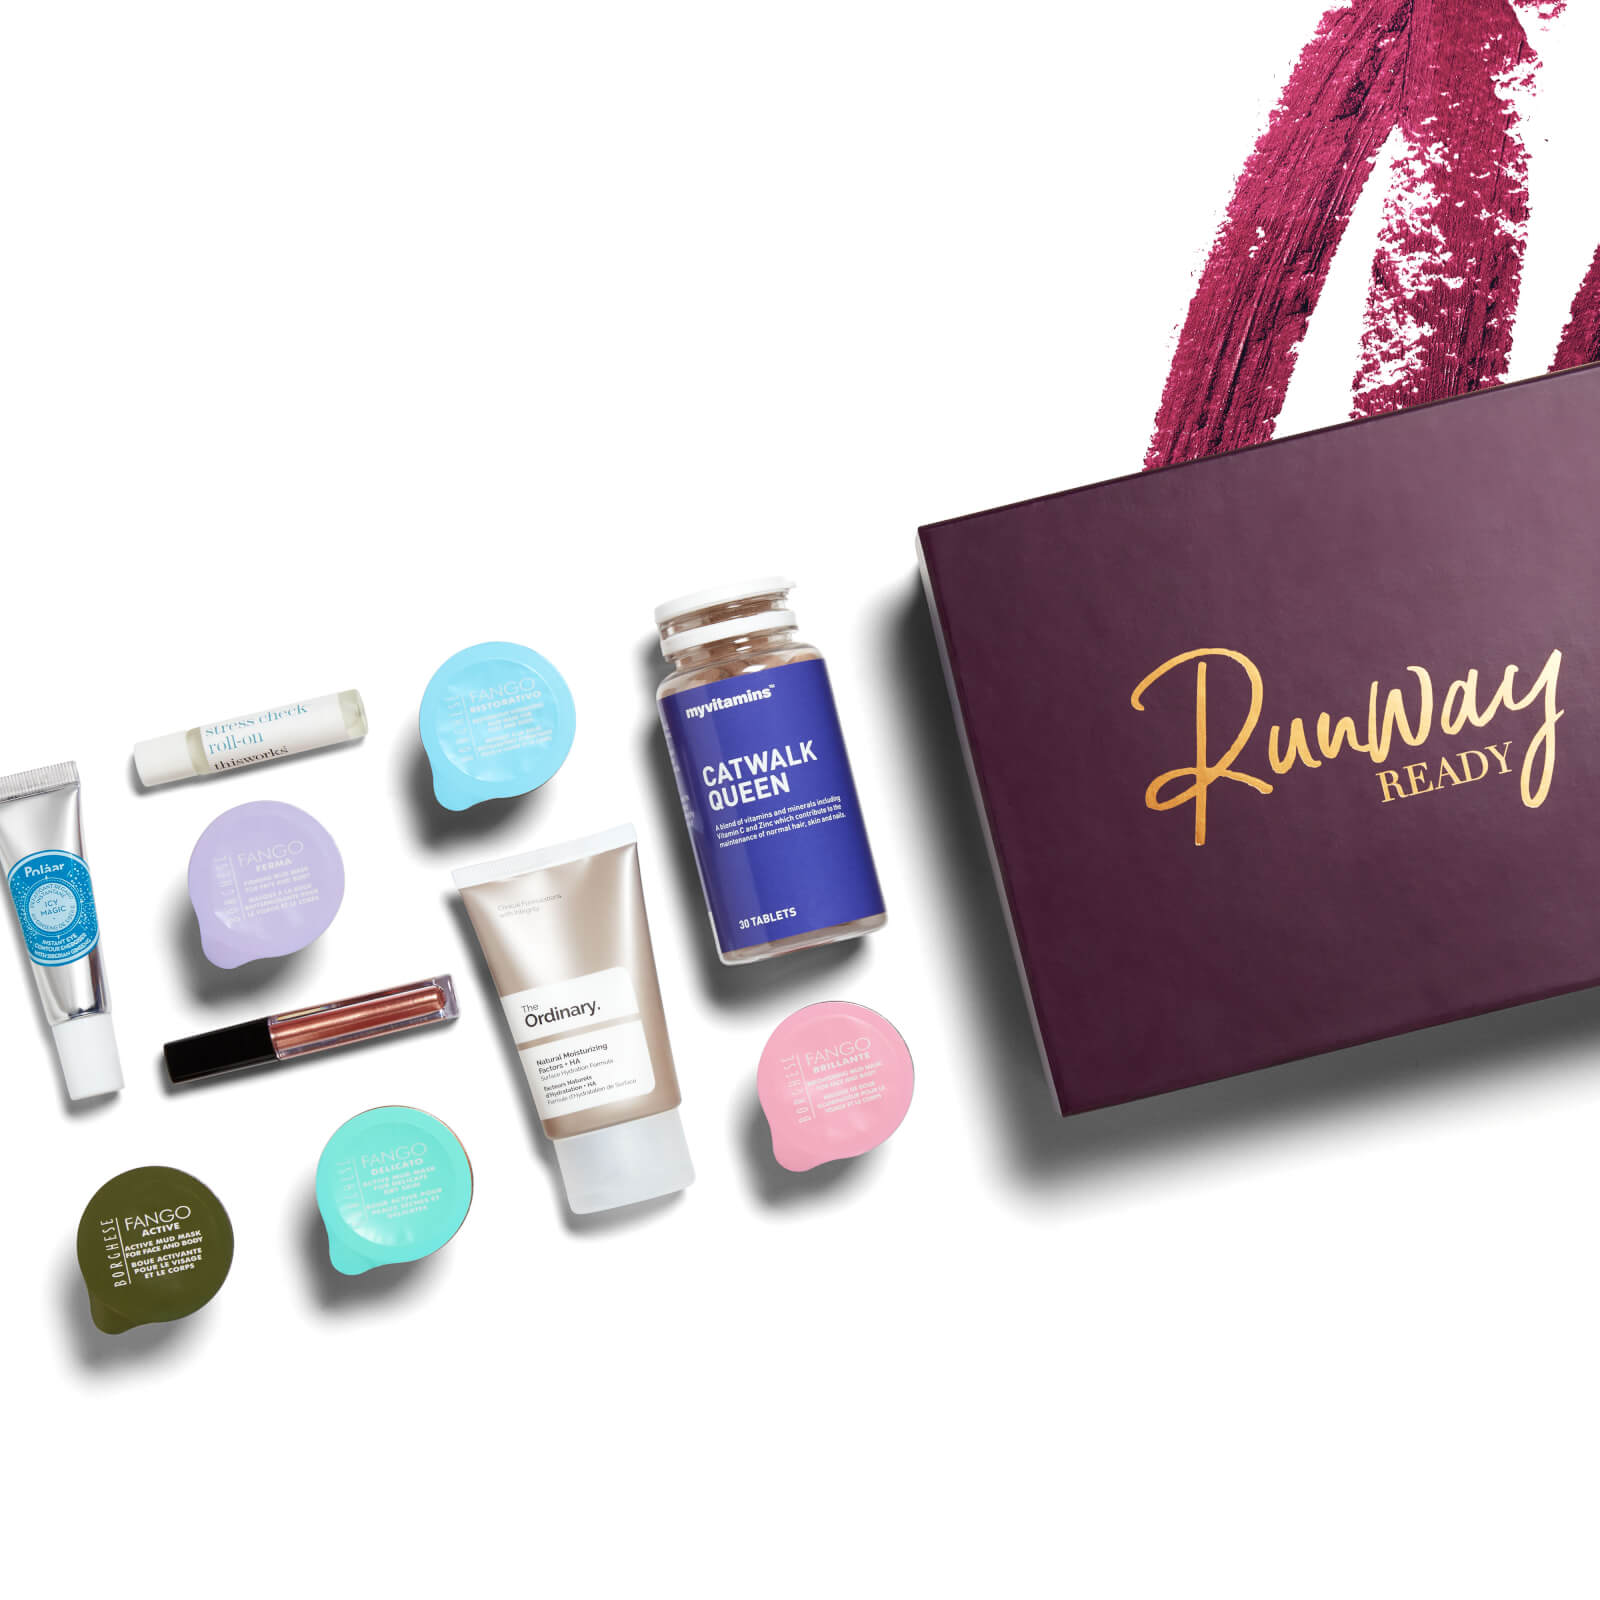 Lookfantastic Beauty Box February 2017